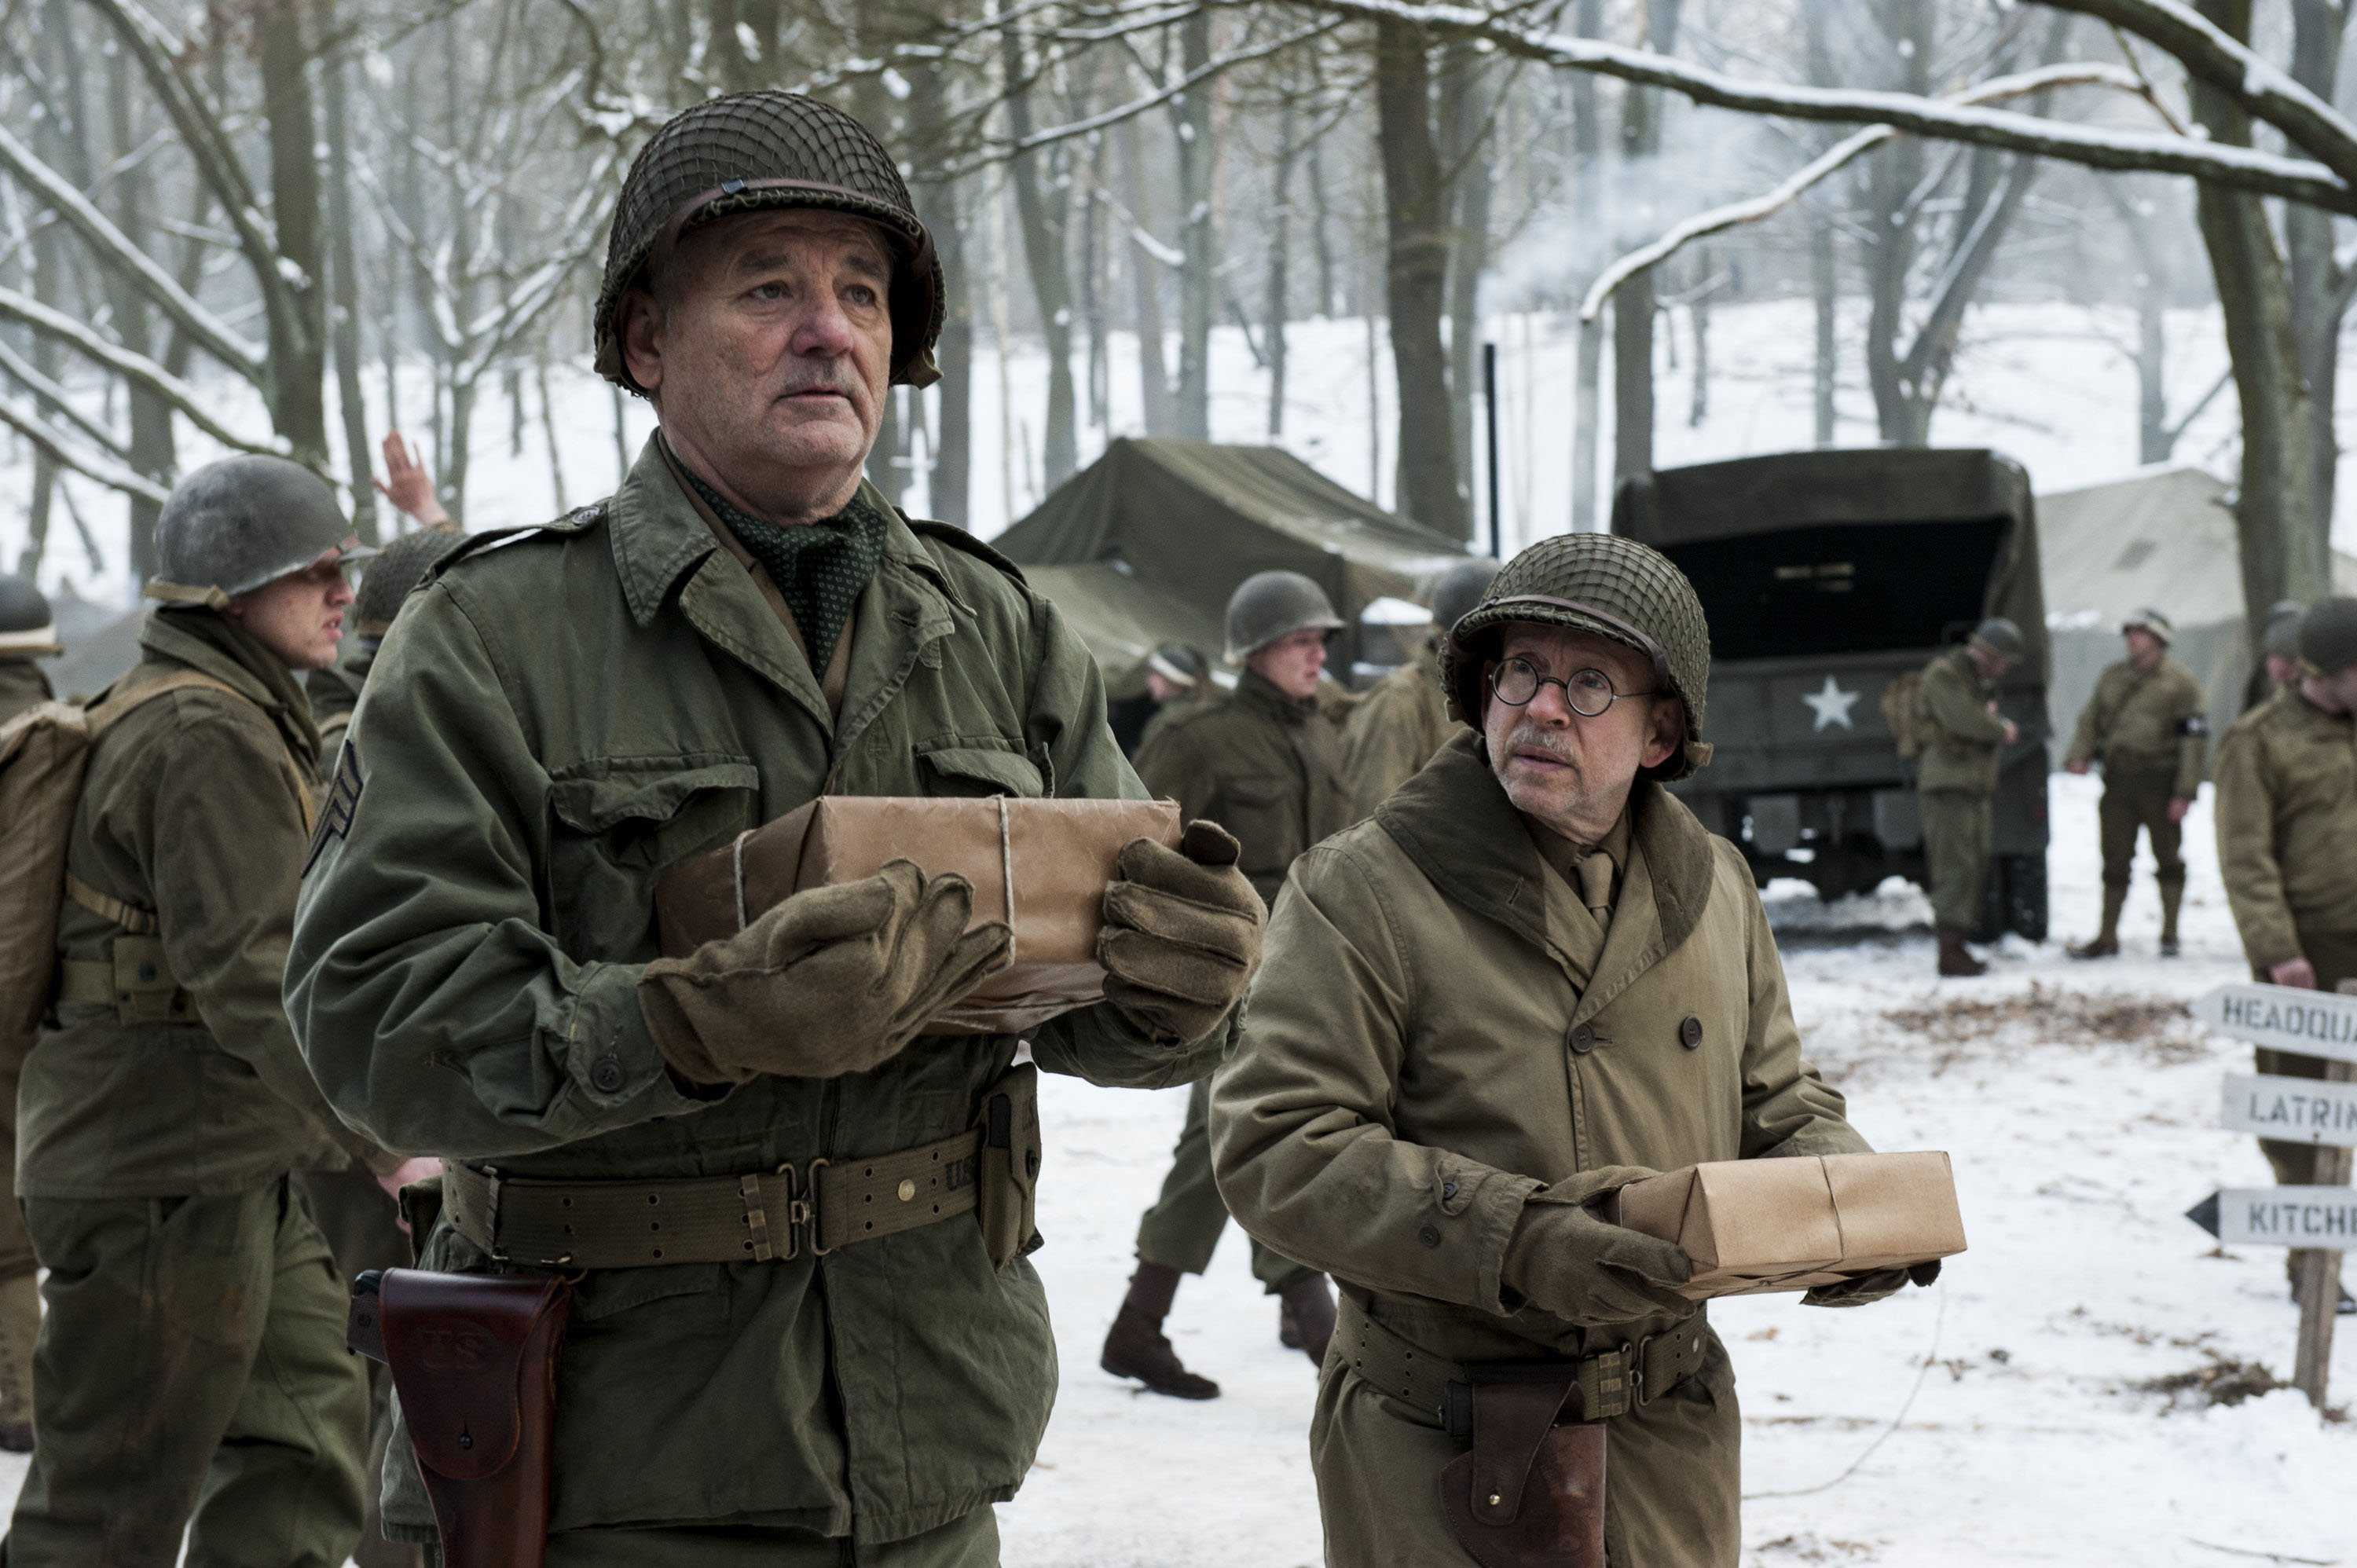 monuments men movie summary